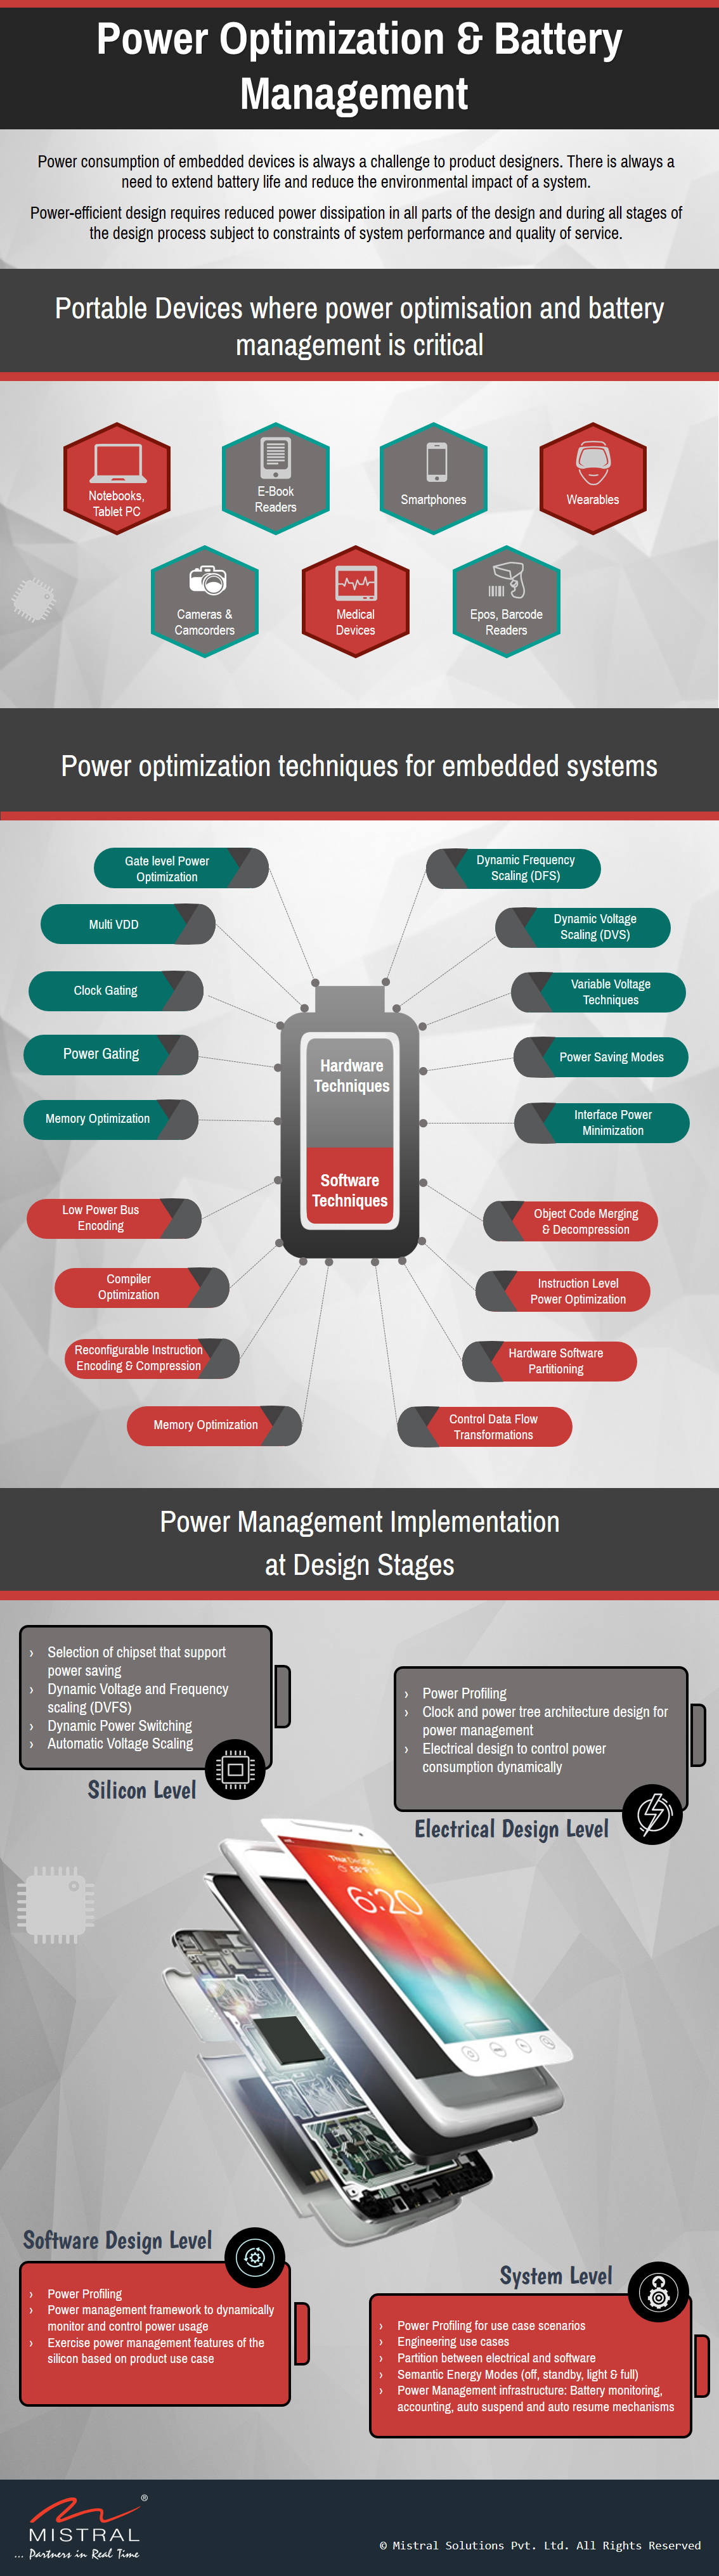 POWER OPTIMIZATION & BATTERY MANAGEMENT - Mistral Solutions